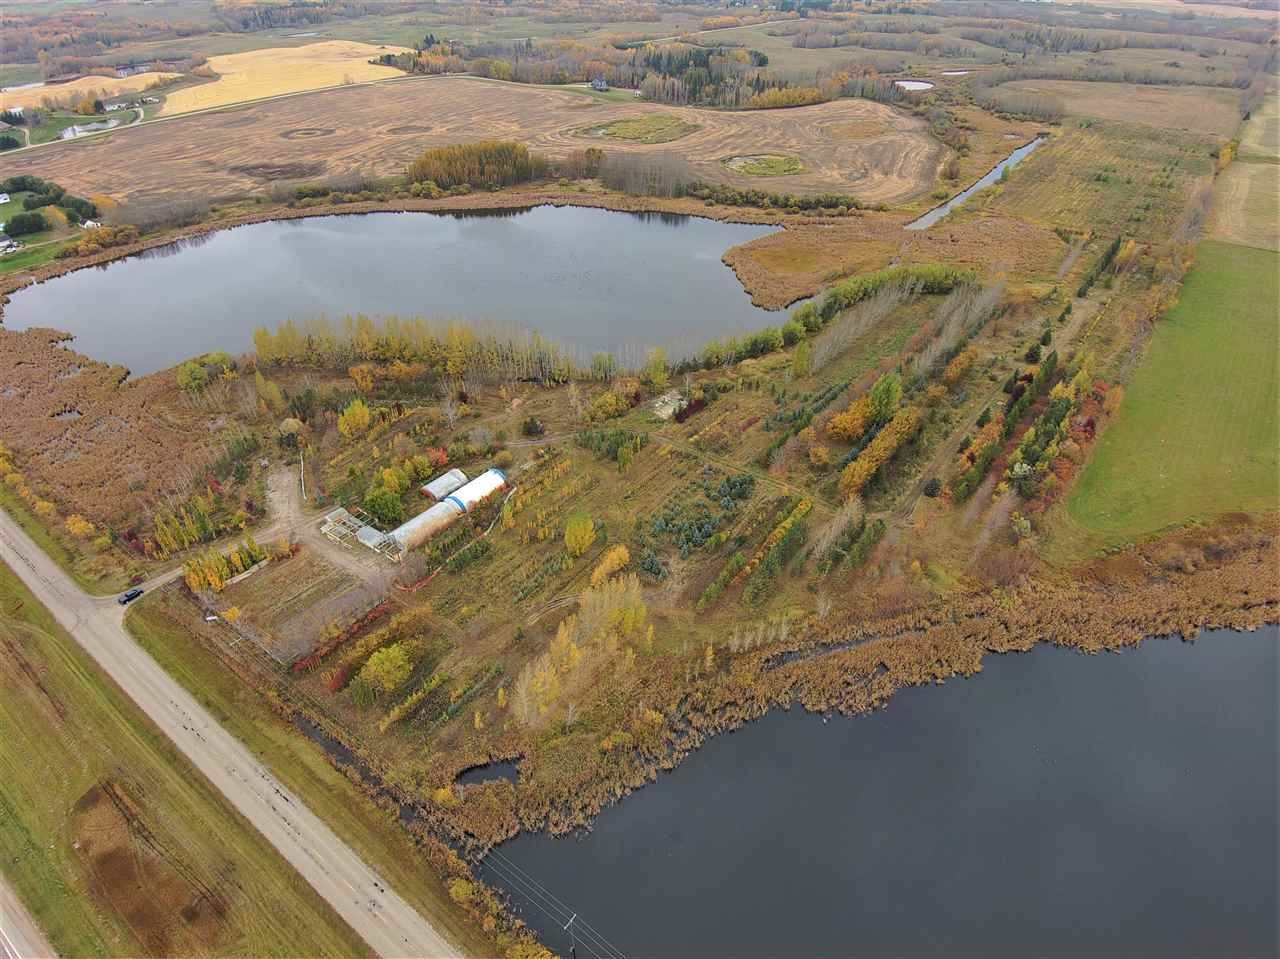 Main Photo: 1020 HWY 16: Rural Parkland County Rural Land/Vacant Lot for sale : MLS®# E4215755